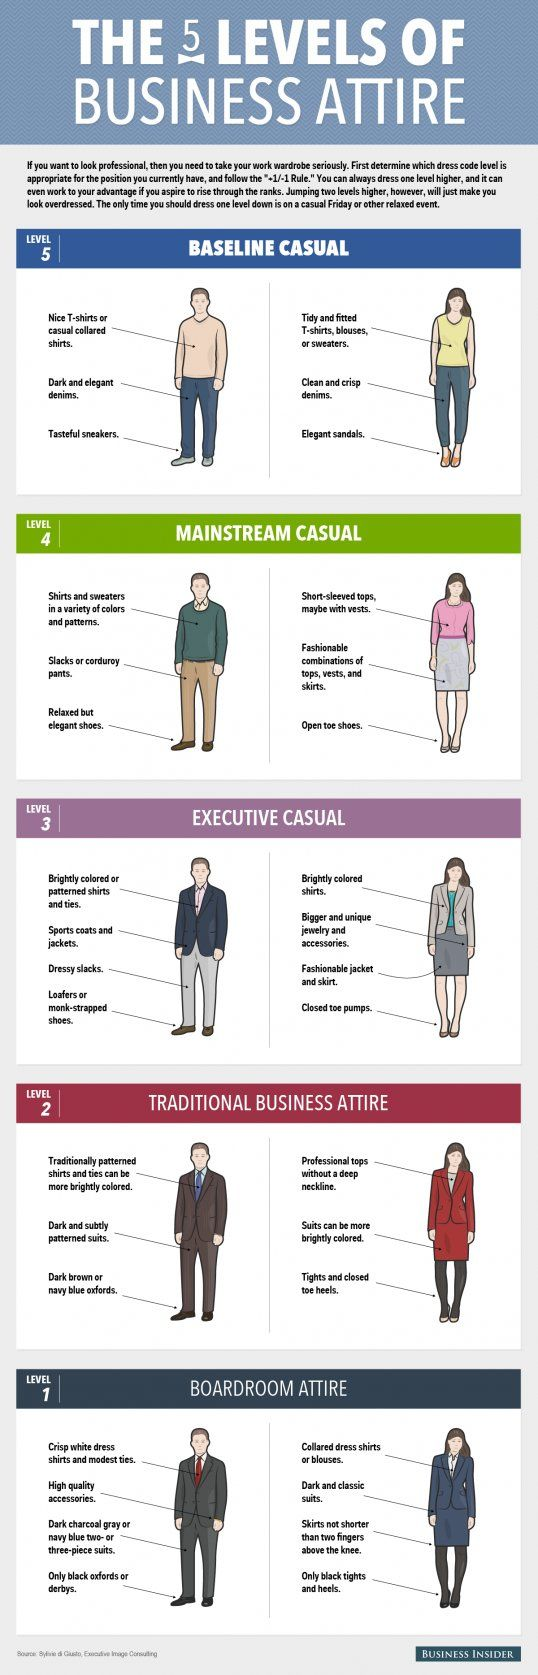 This graphic's boardroom attire is where you should aim for interviews!